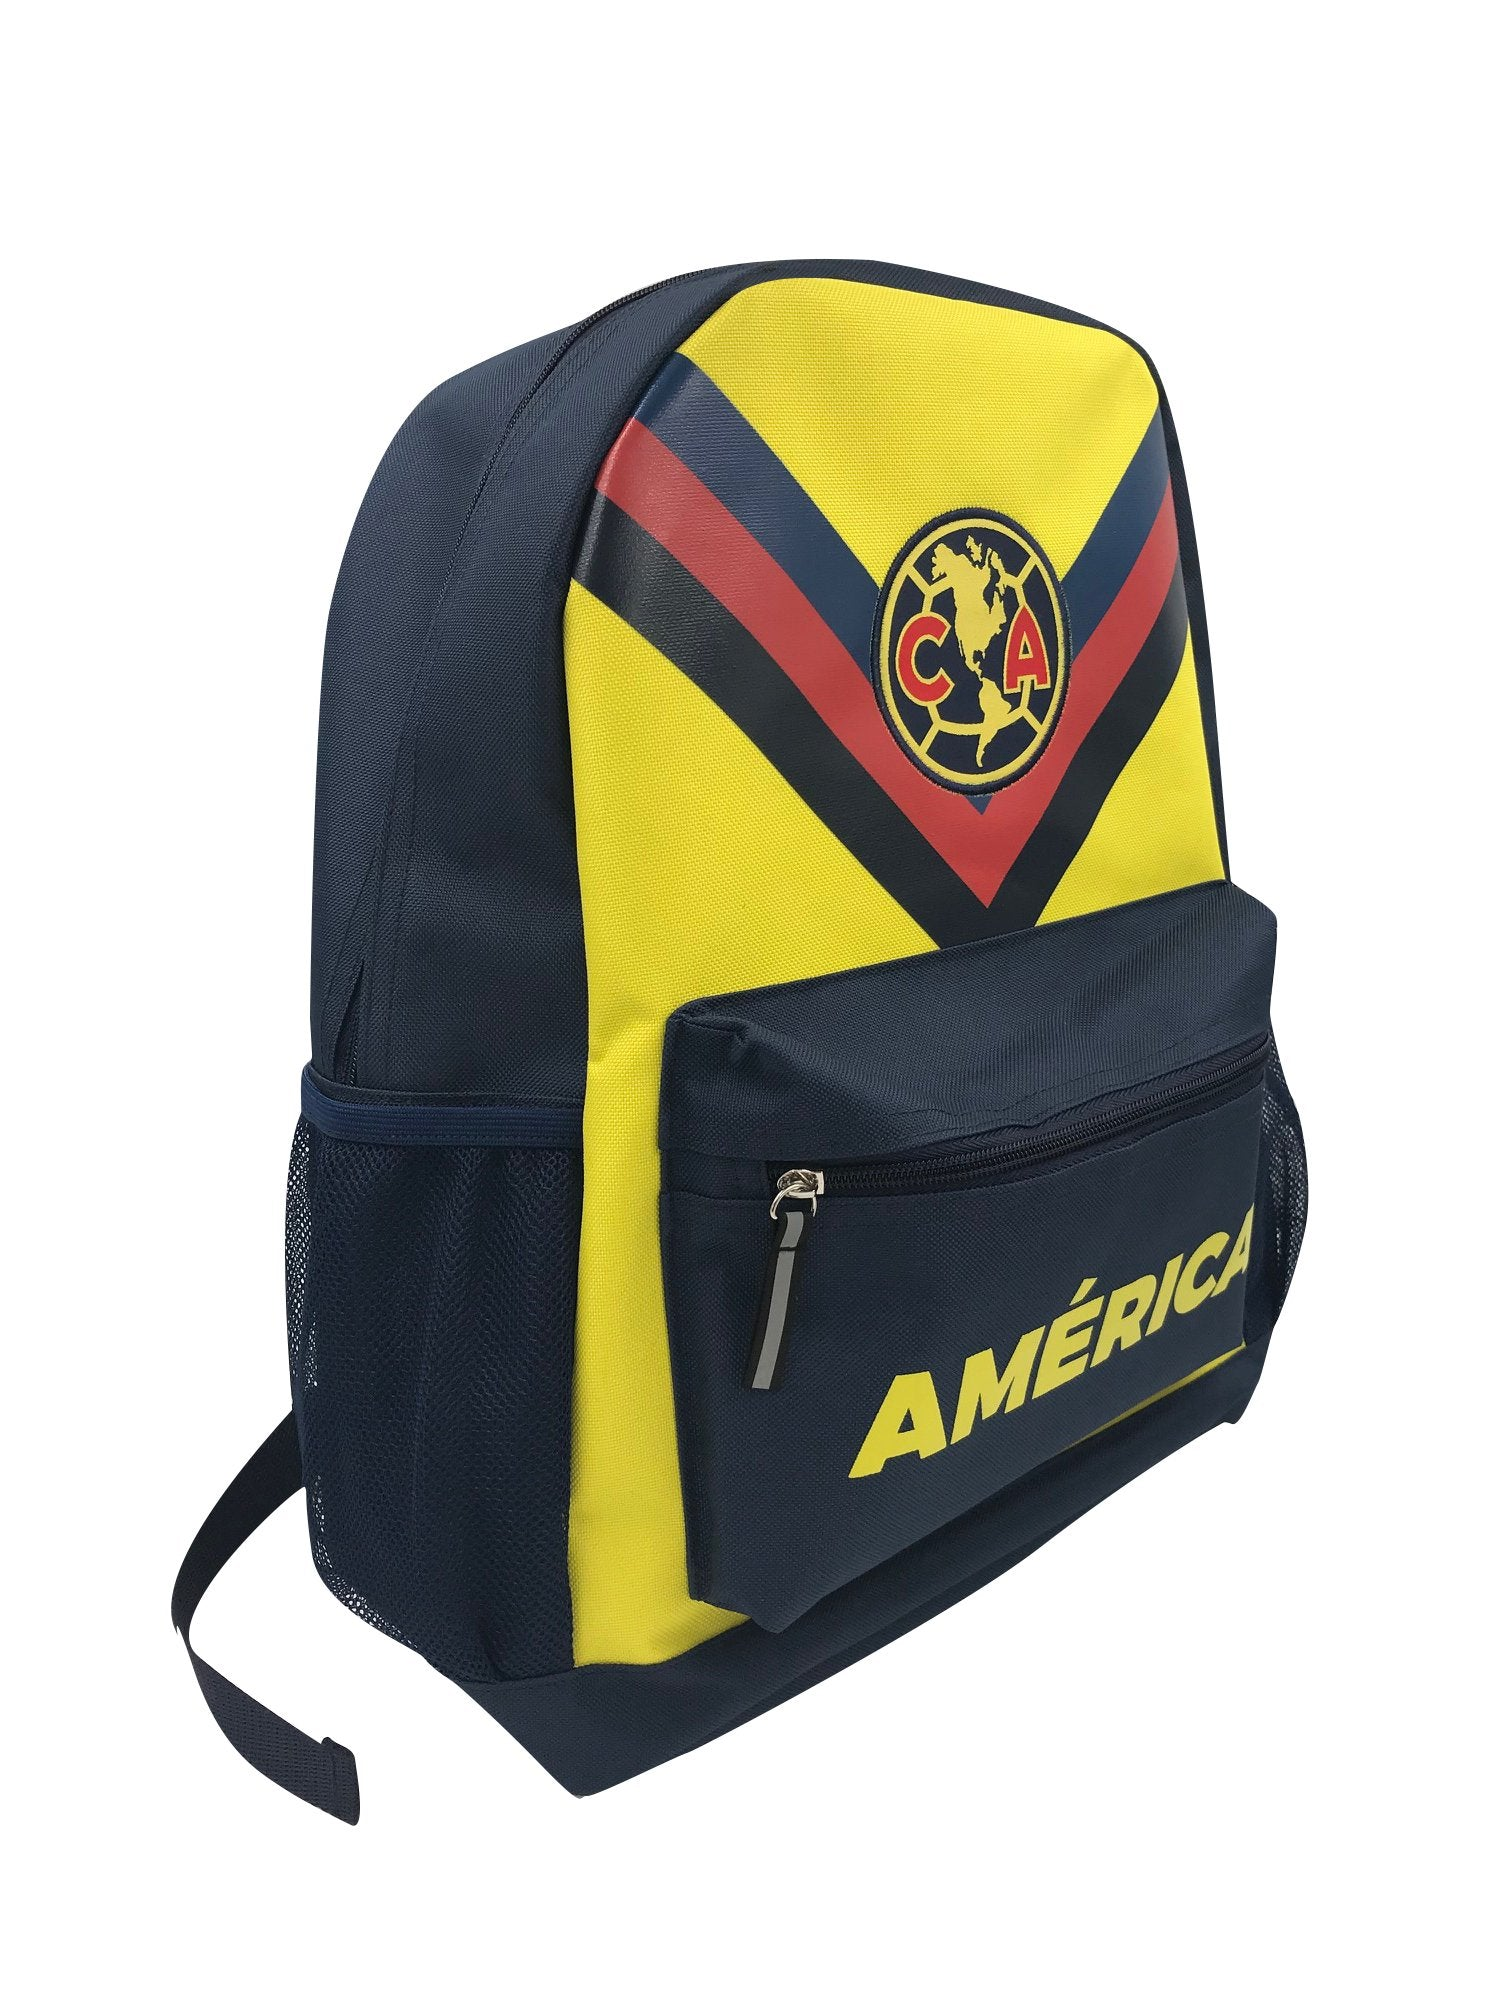 Club América Backpack - Yellow by Icon Sports